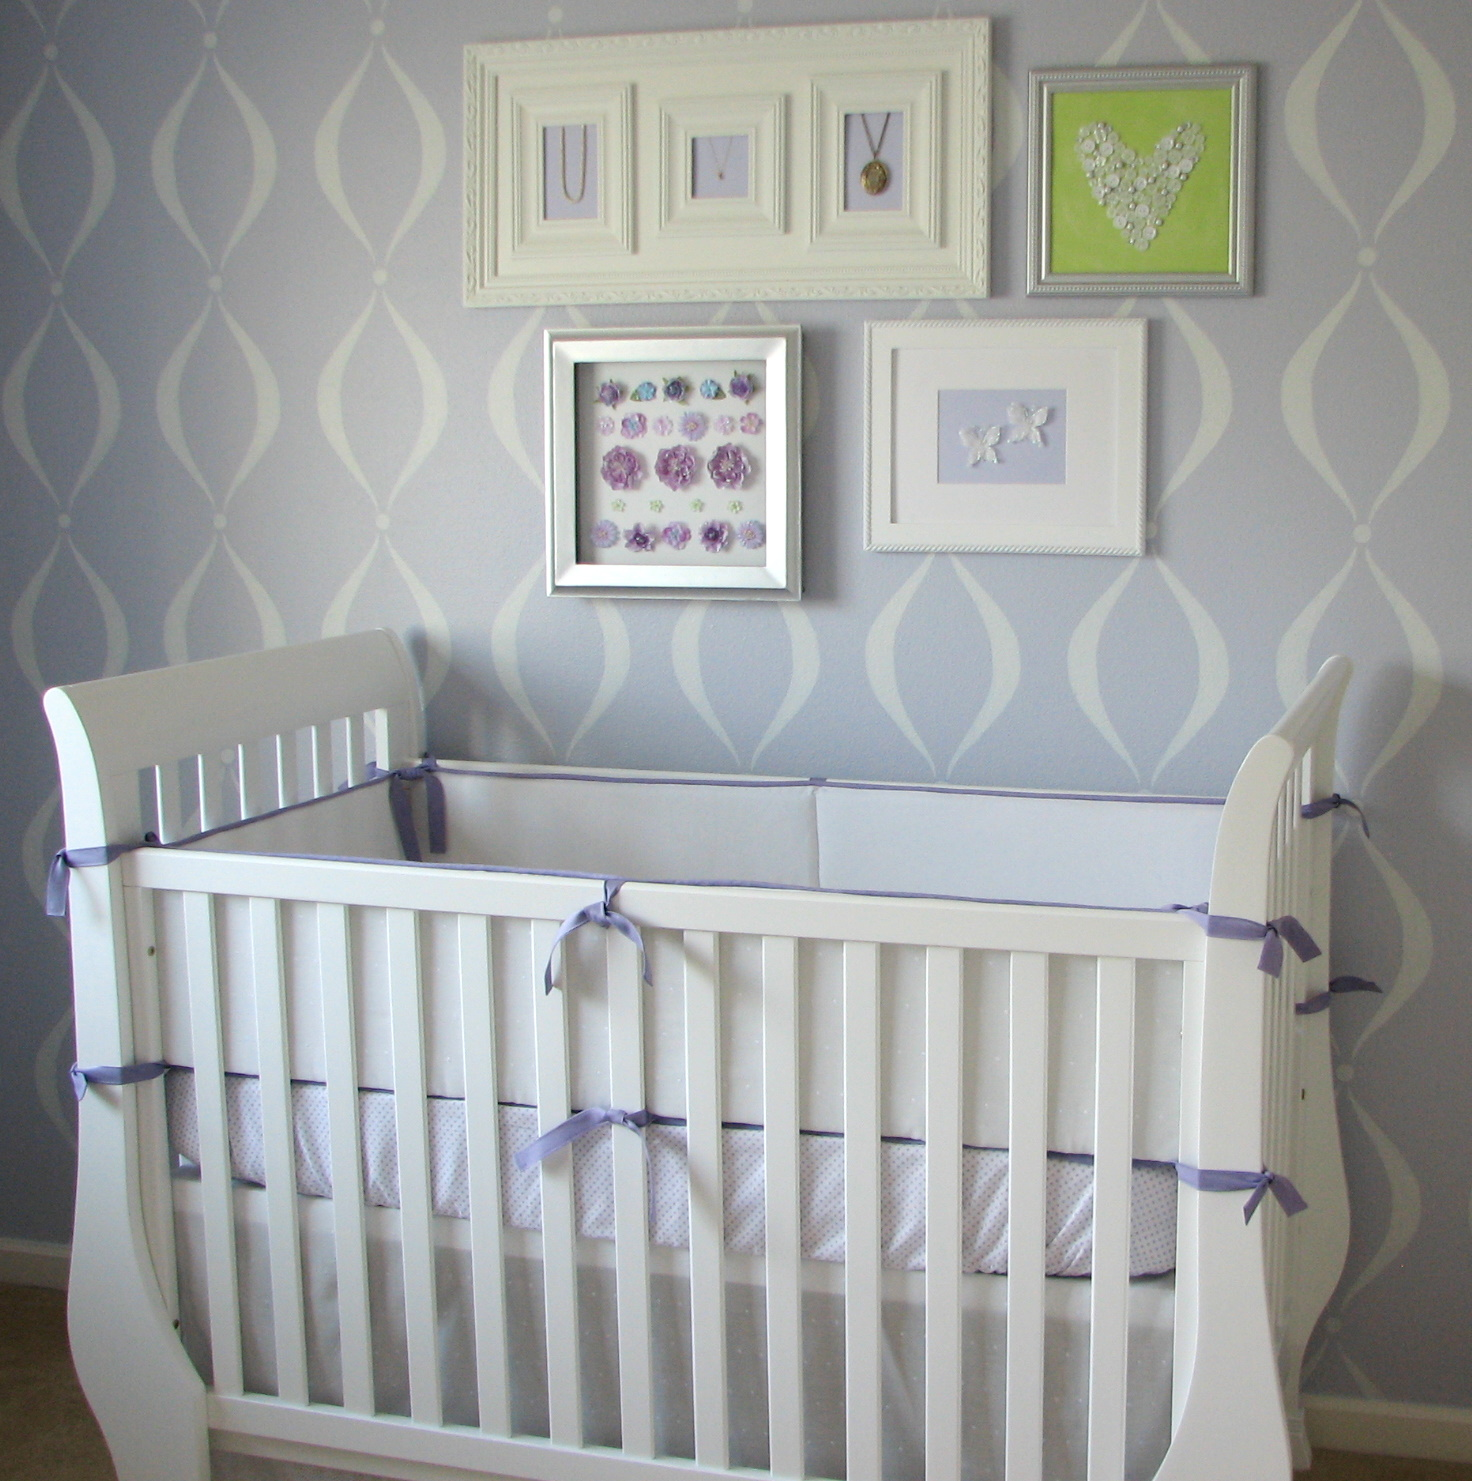 Baby crib gertie - There You Have It Crisp And Clean With Just The Right Pop Of Color To Coordinate With The Lavender Walls Hopefully My Little Girl Will Love Sleeping In It